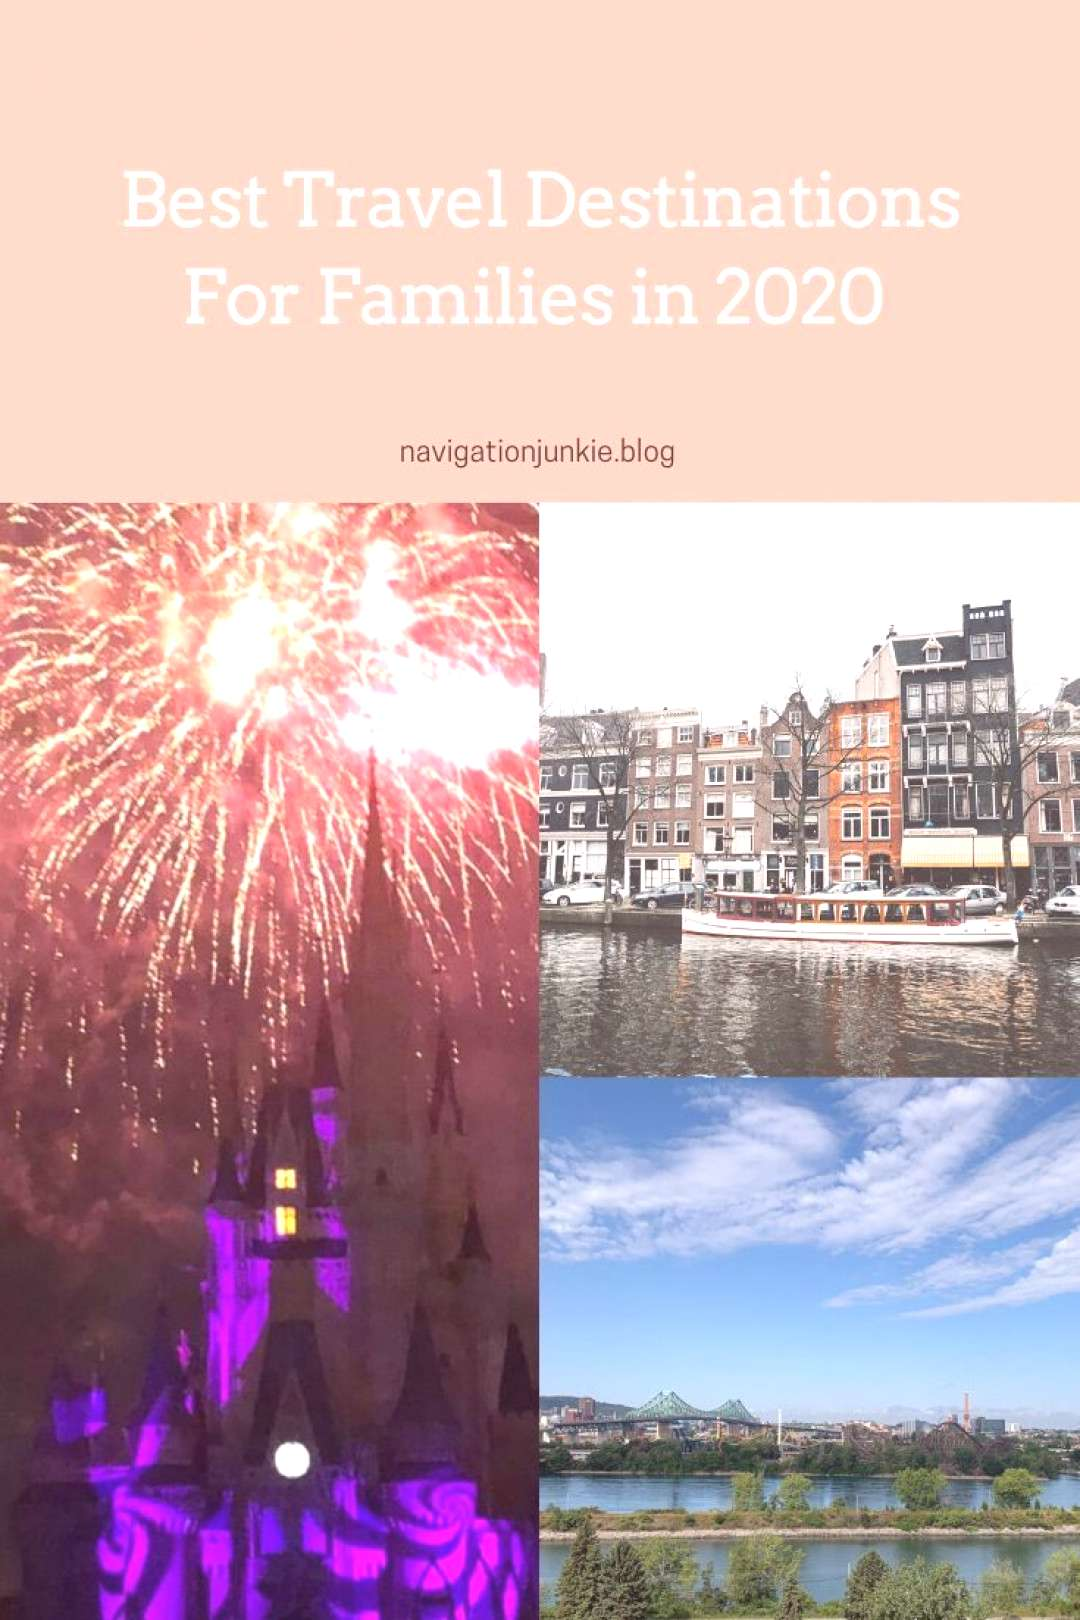 Best Travel Destinations for Families in 2020 Find the perfect destination to travel to with your f